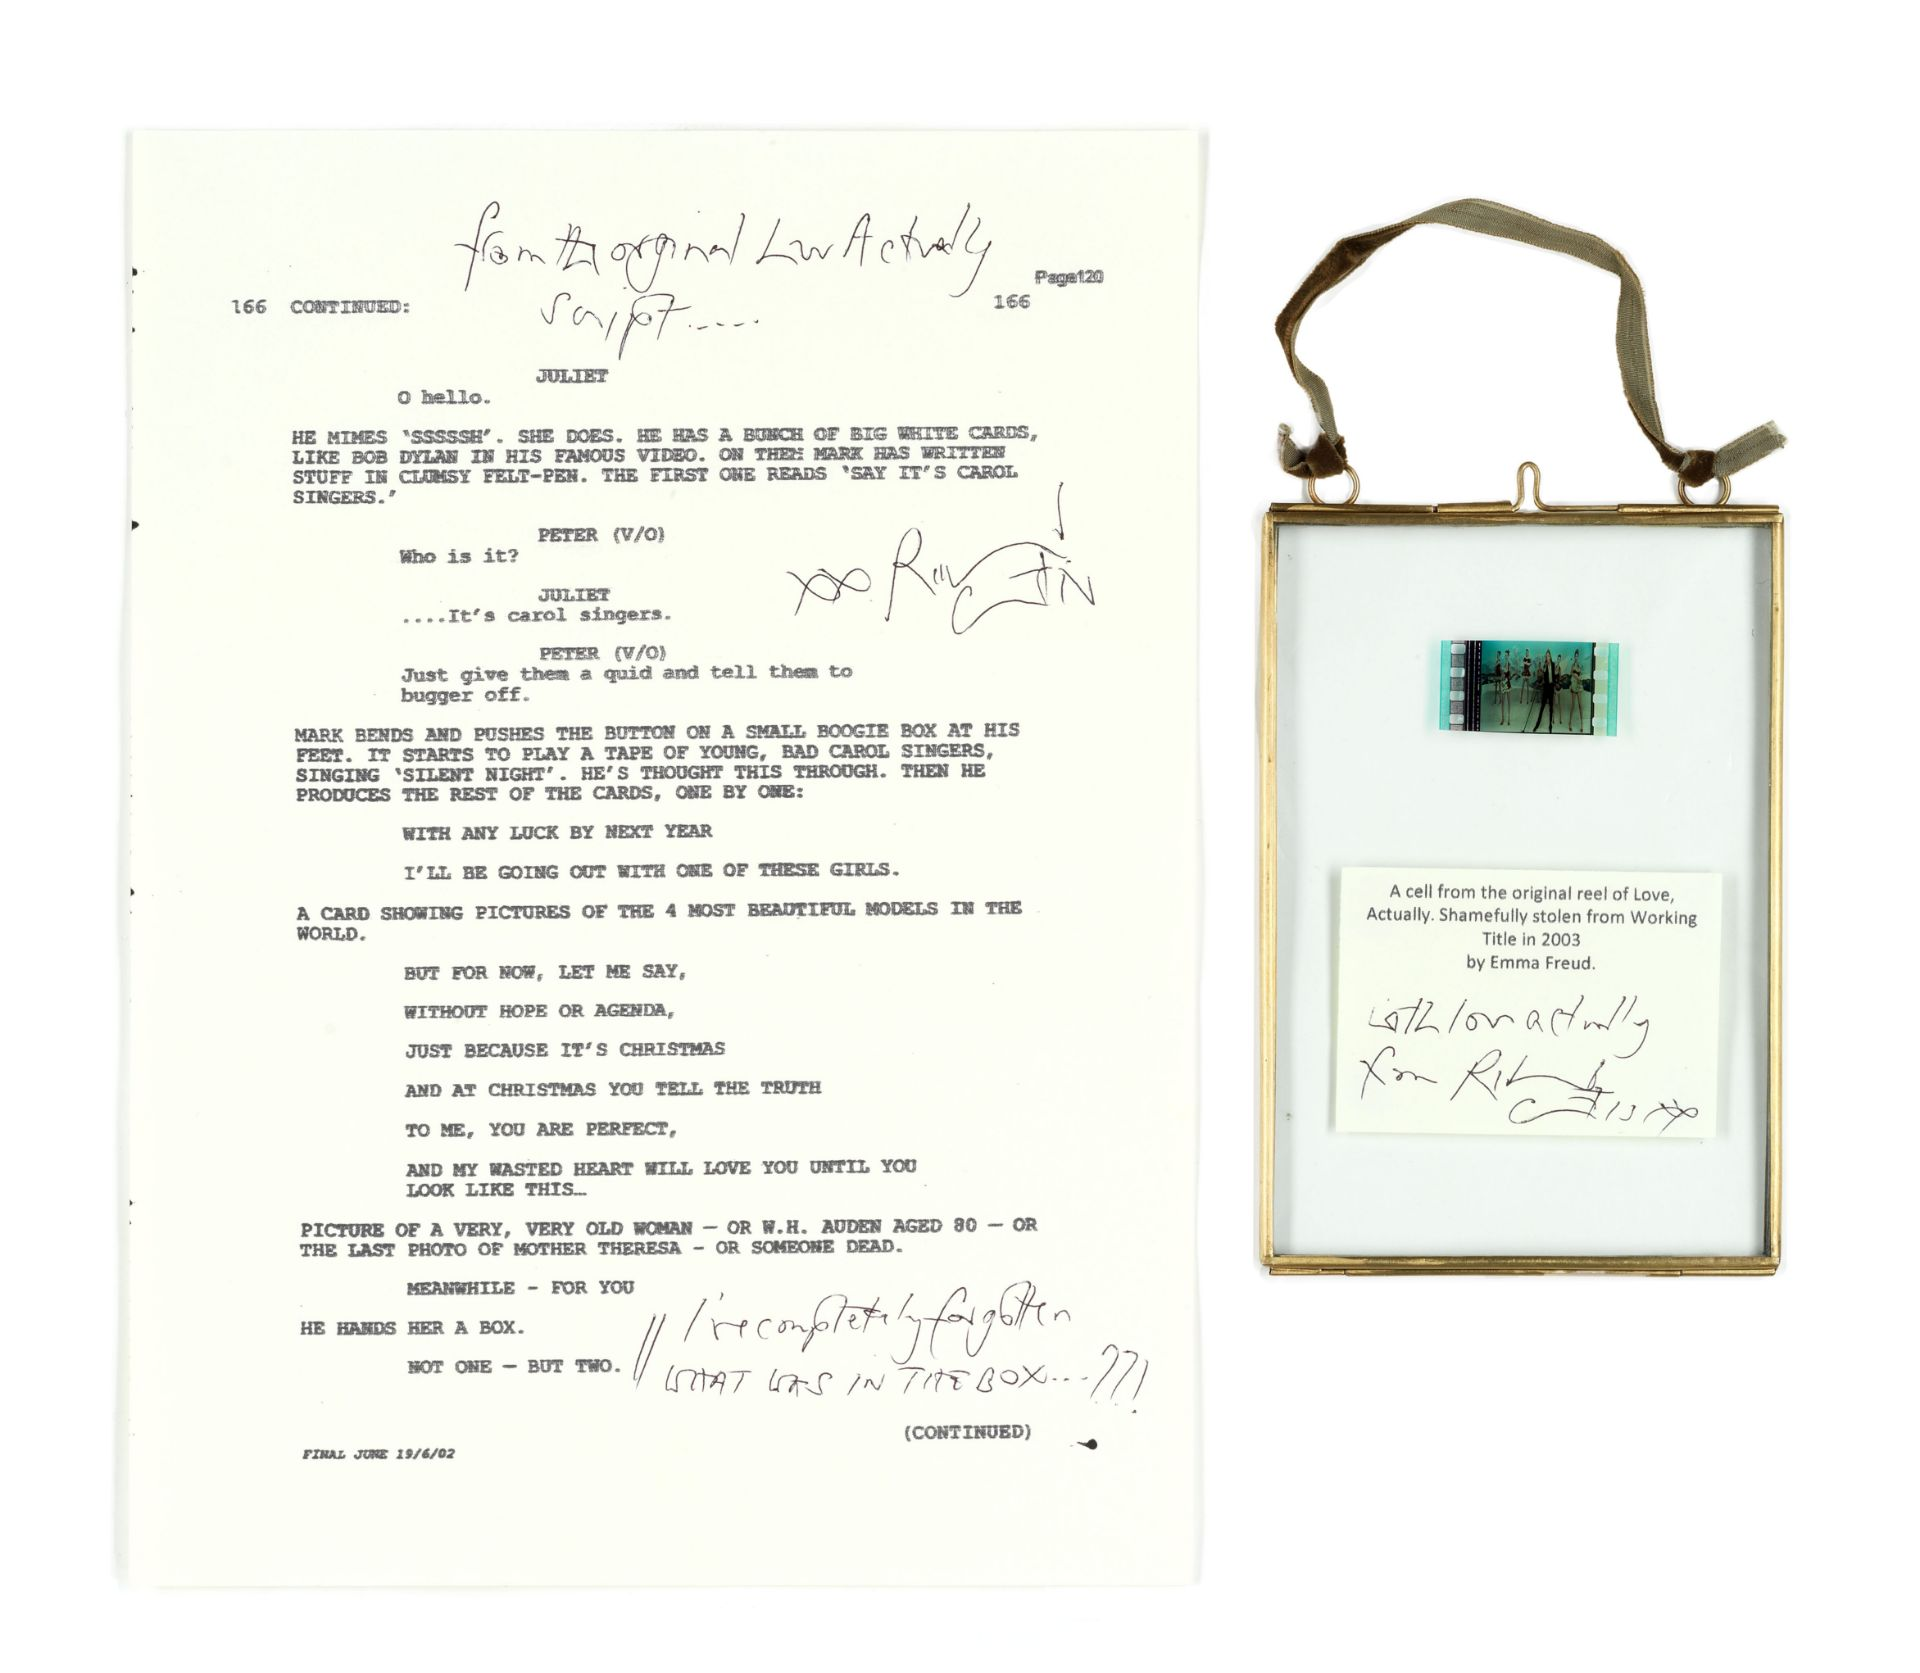 Love Actually: A signed script page and original cel from the film reel, Working Title, 2003, 2